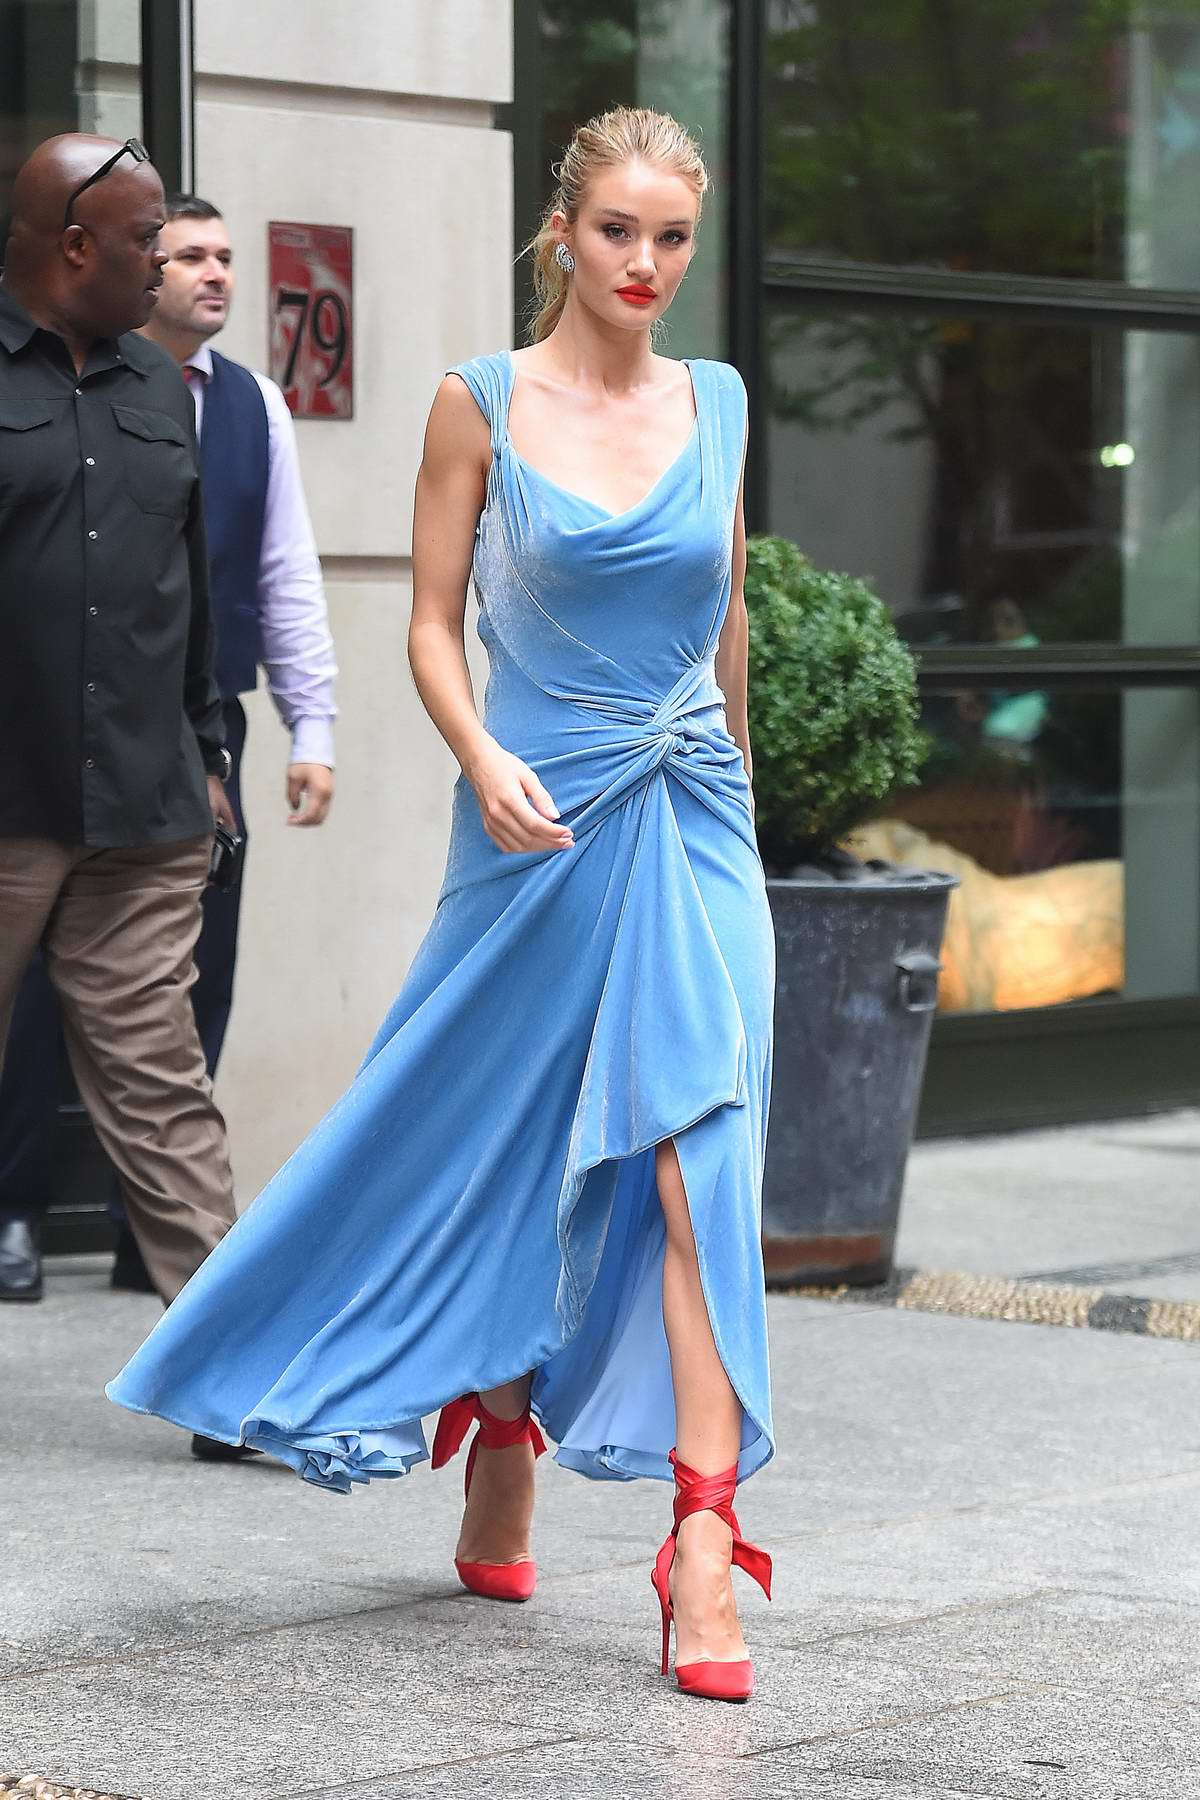 Rosie Huntington-Whiteley looks lovely in a blue dress with red heels as she heads out in New York City